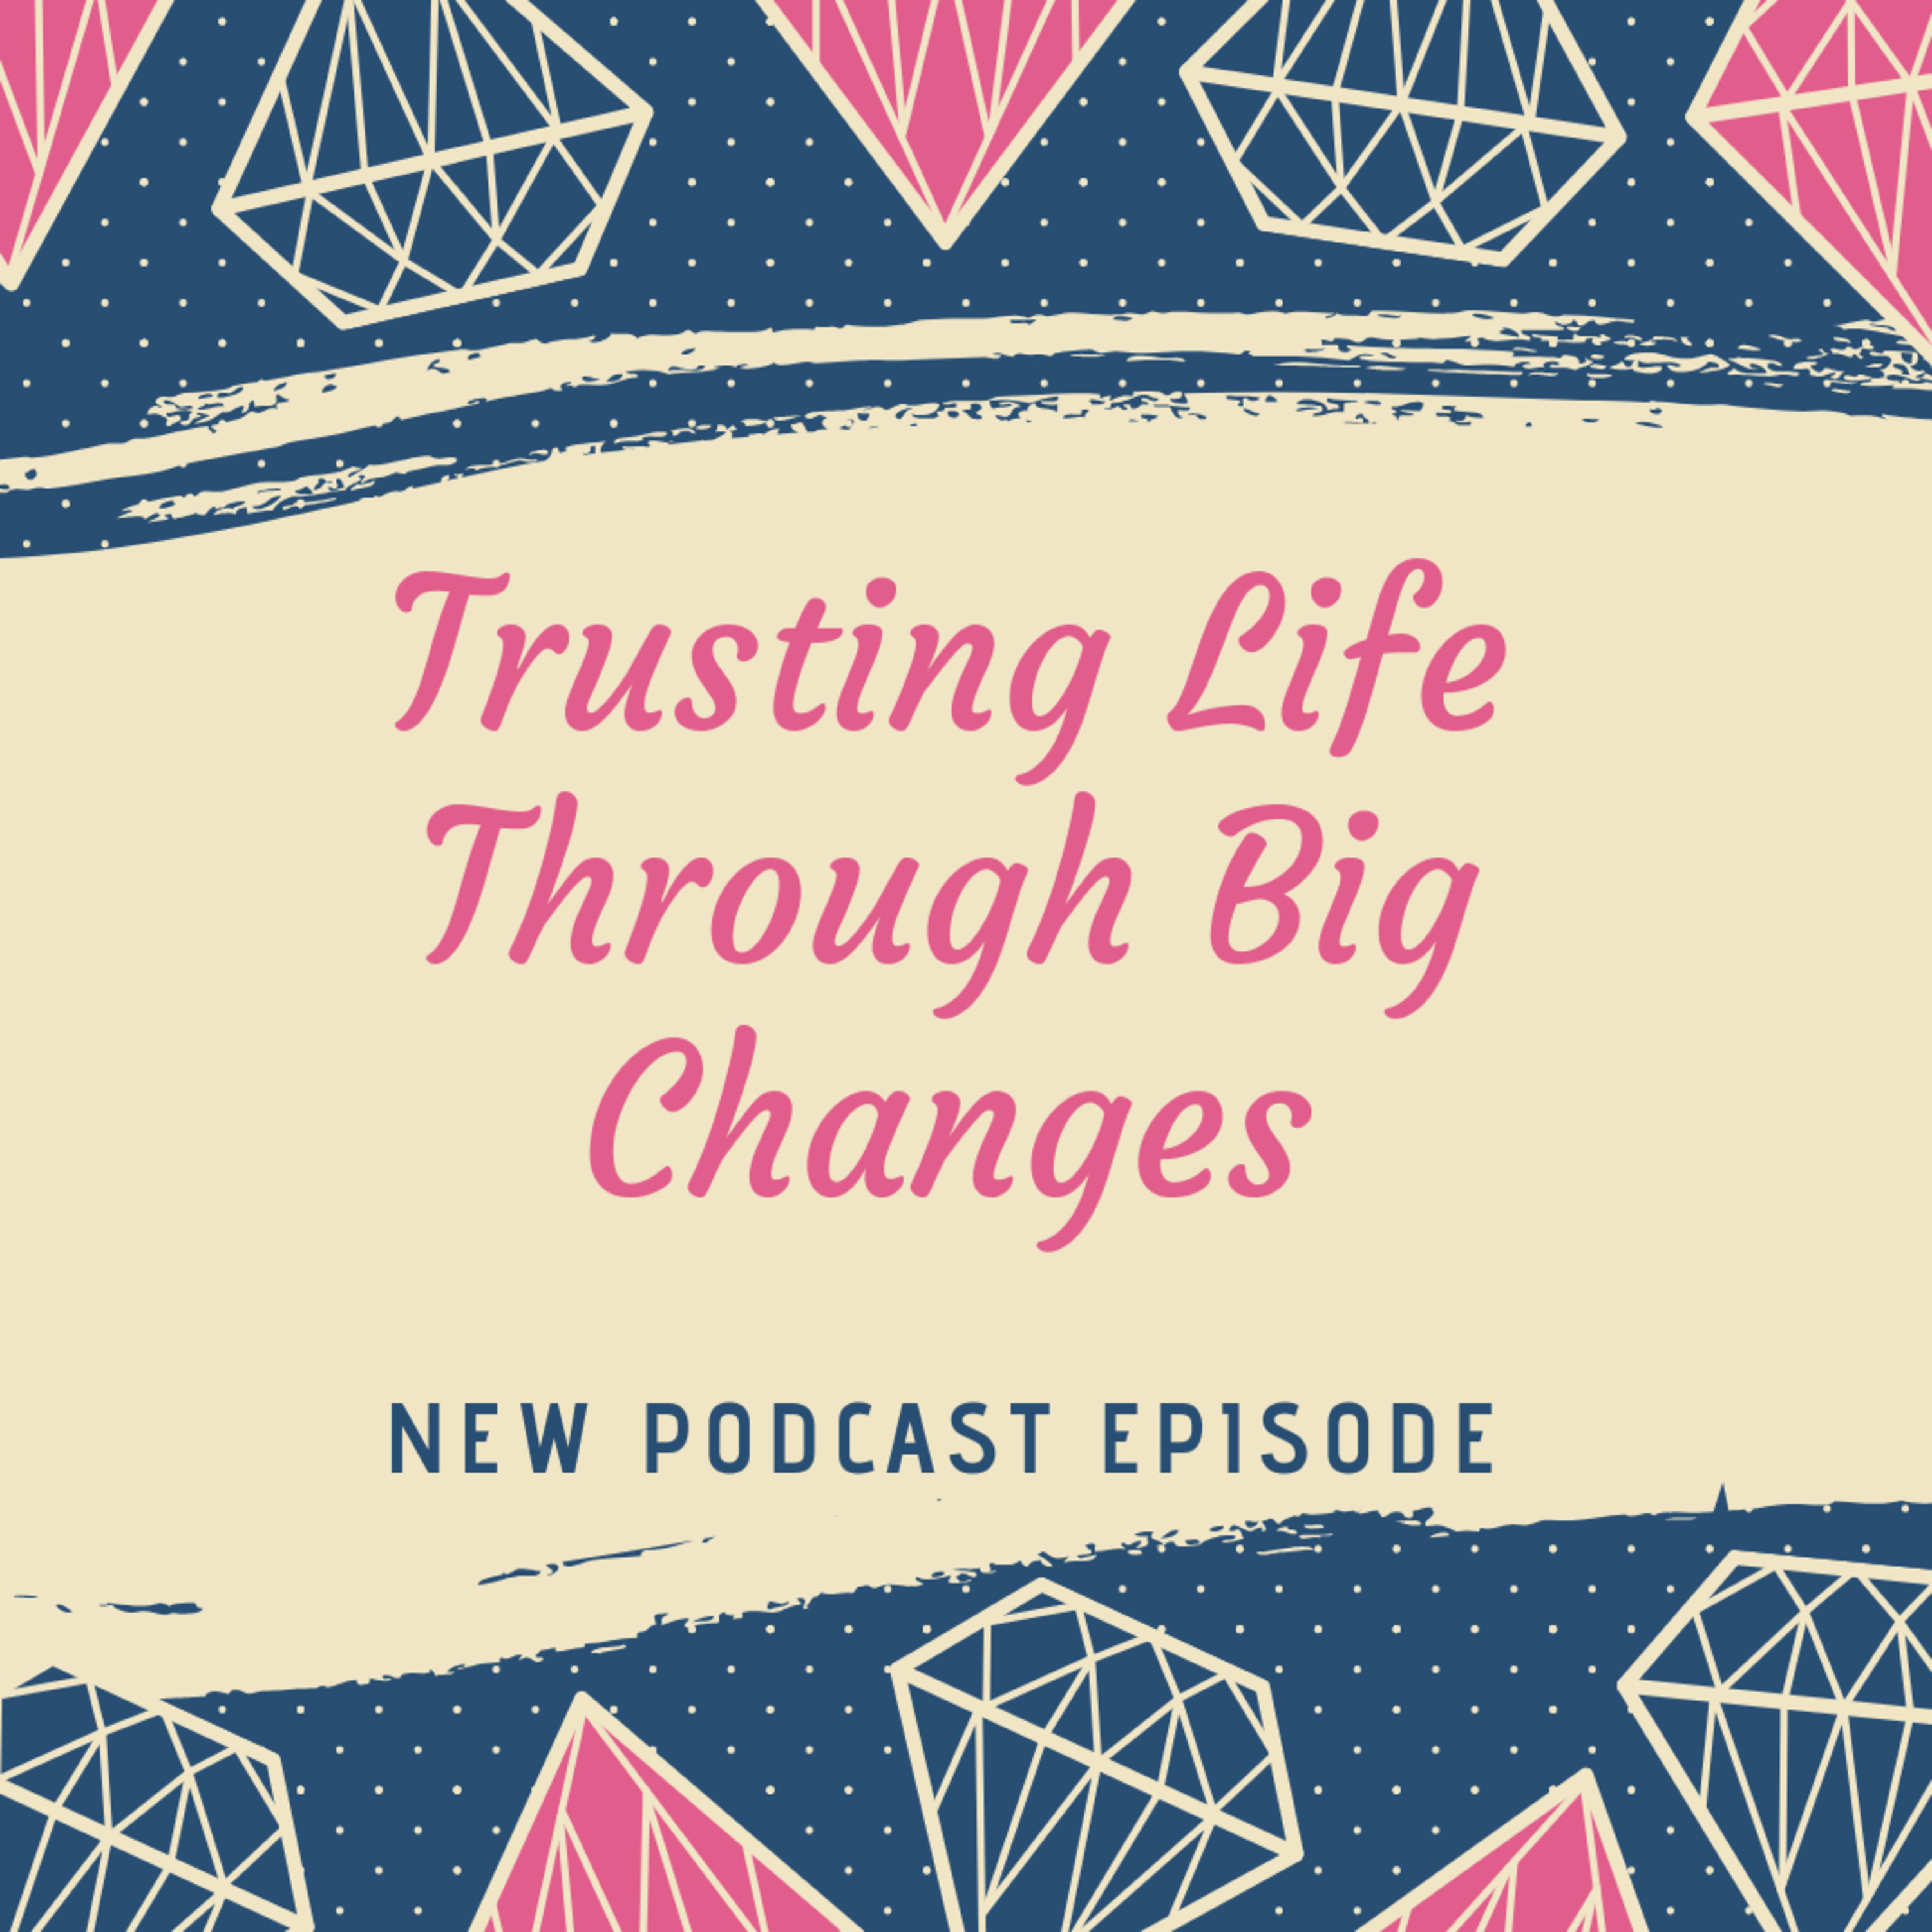 Trusting Life through Big Changes